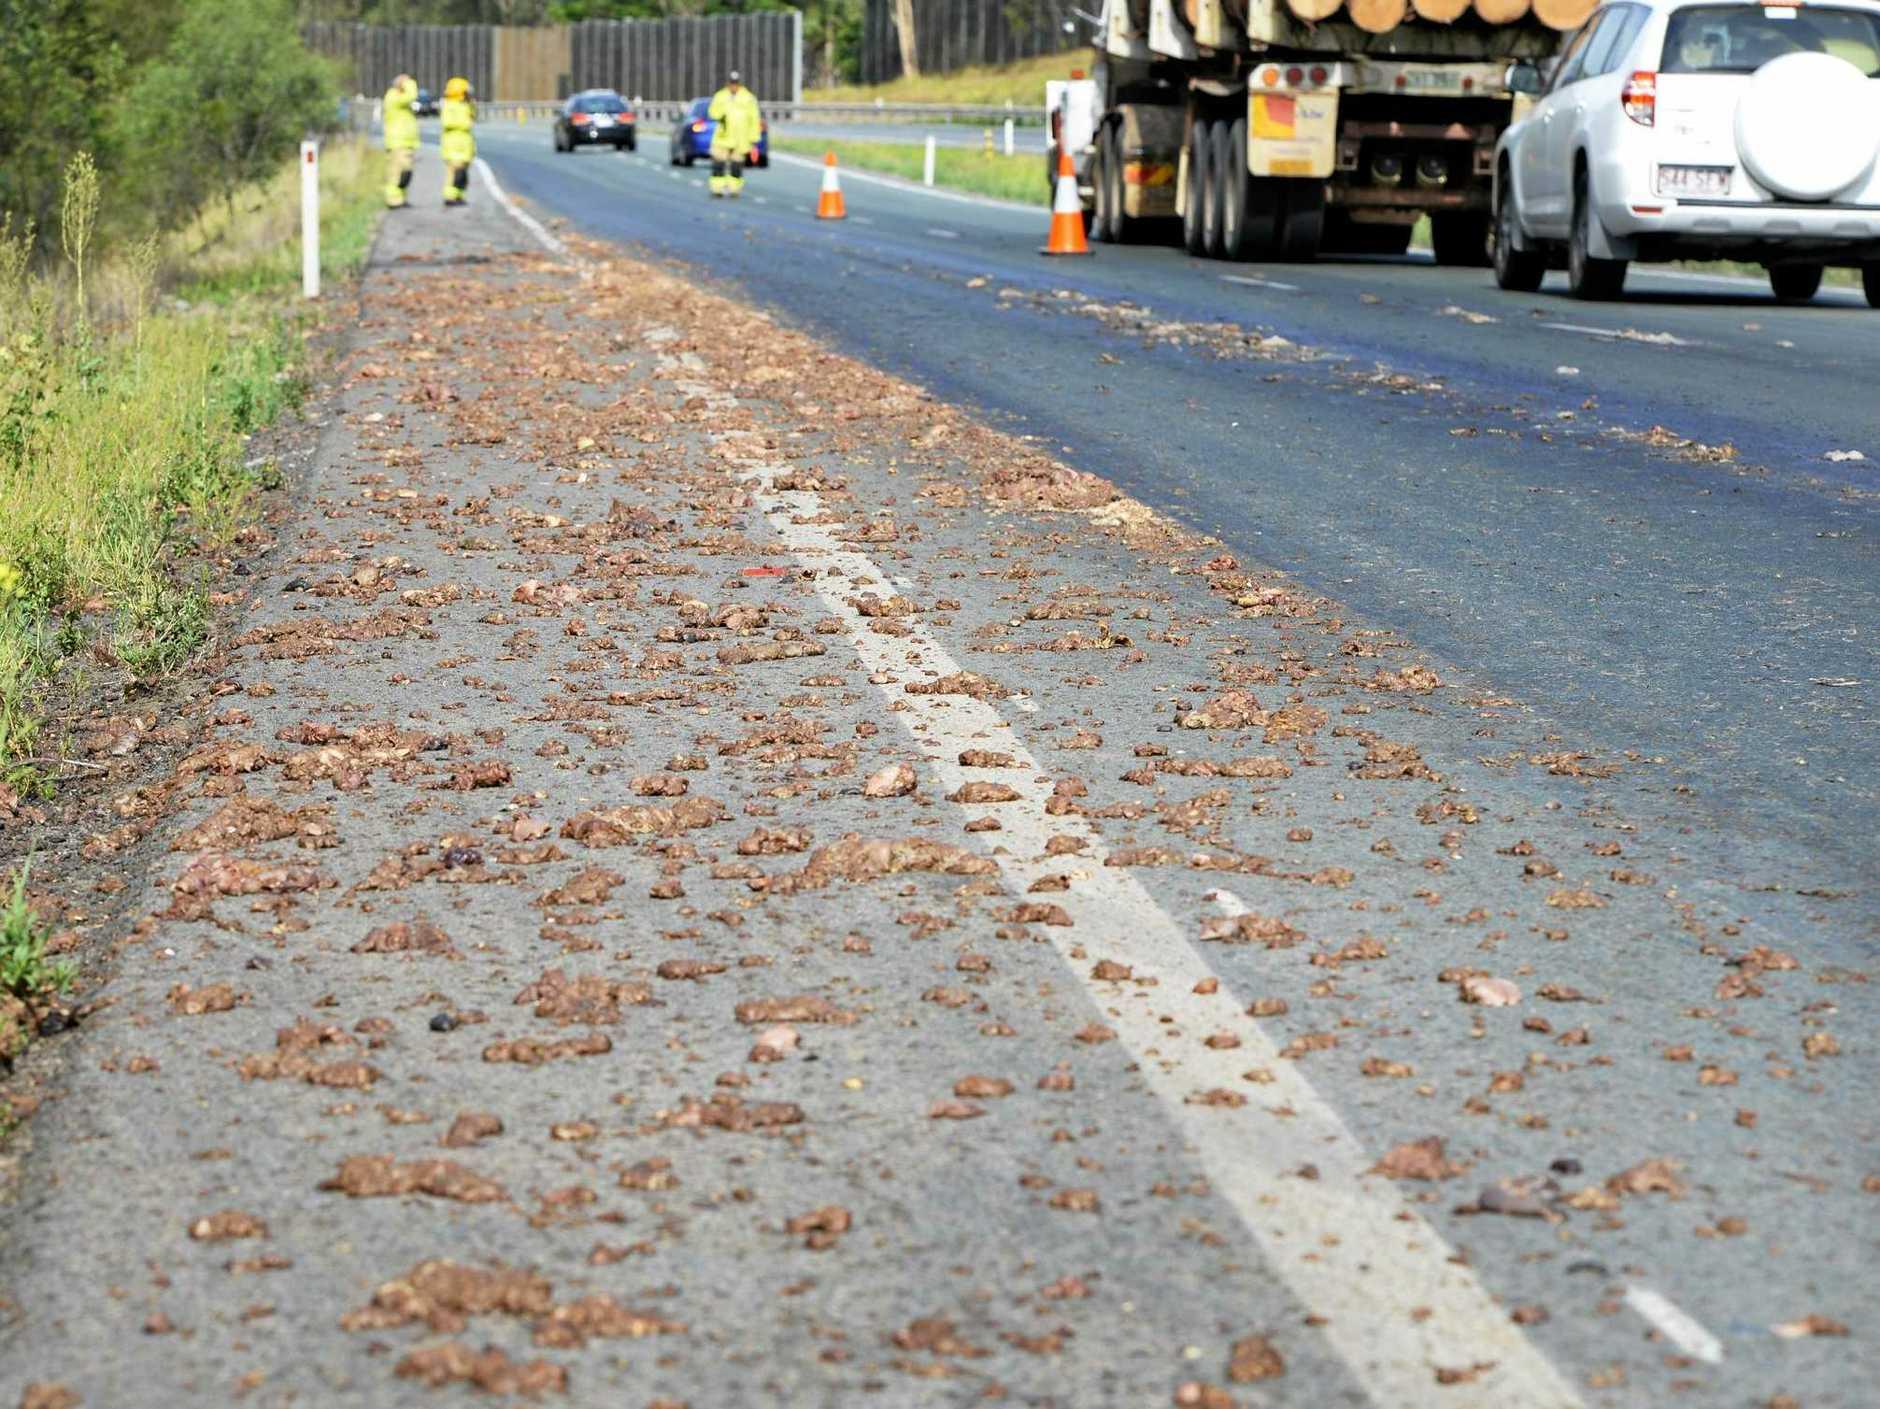 Offal spilled all over the D'Aguilar Highway outside of Kilcoy just like it did here on the Warrego Highway in 2013.